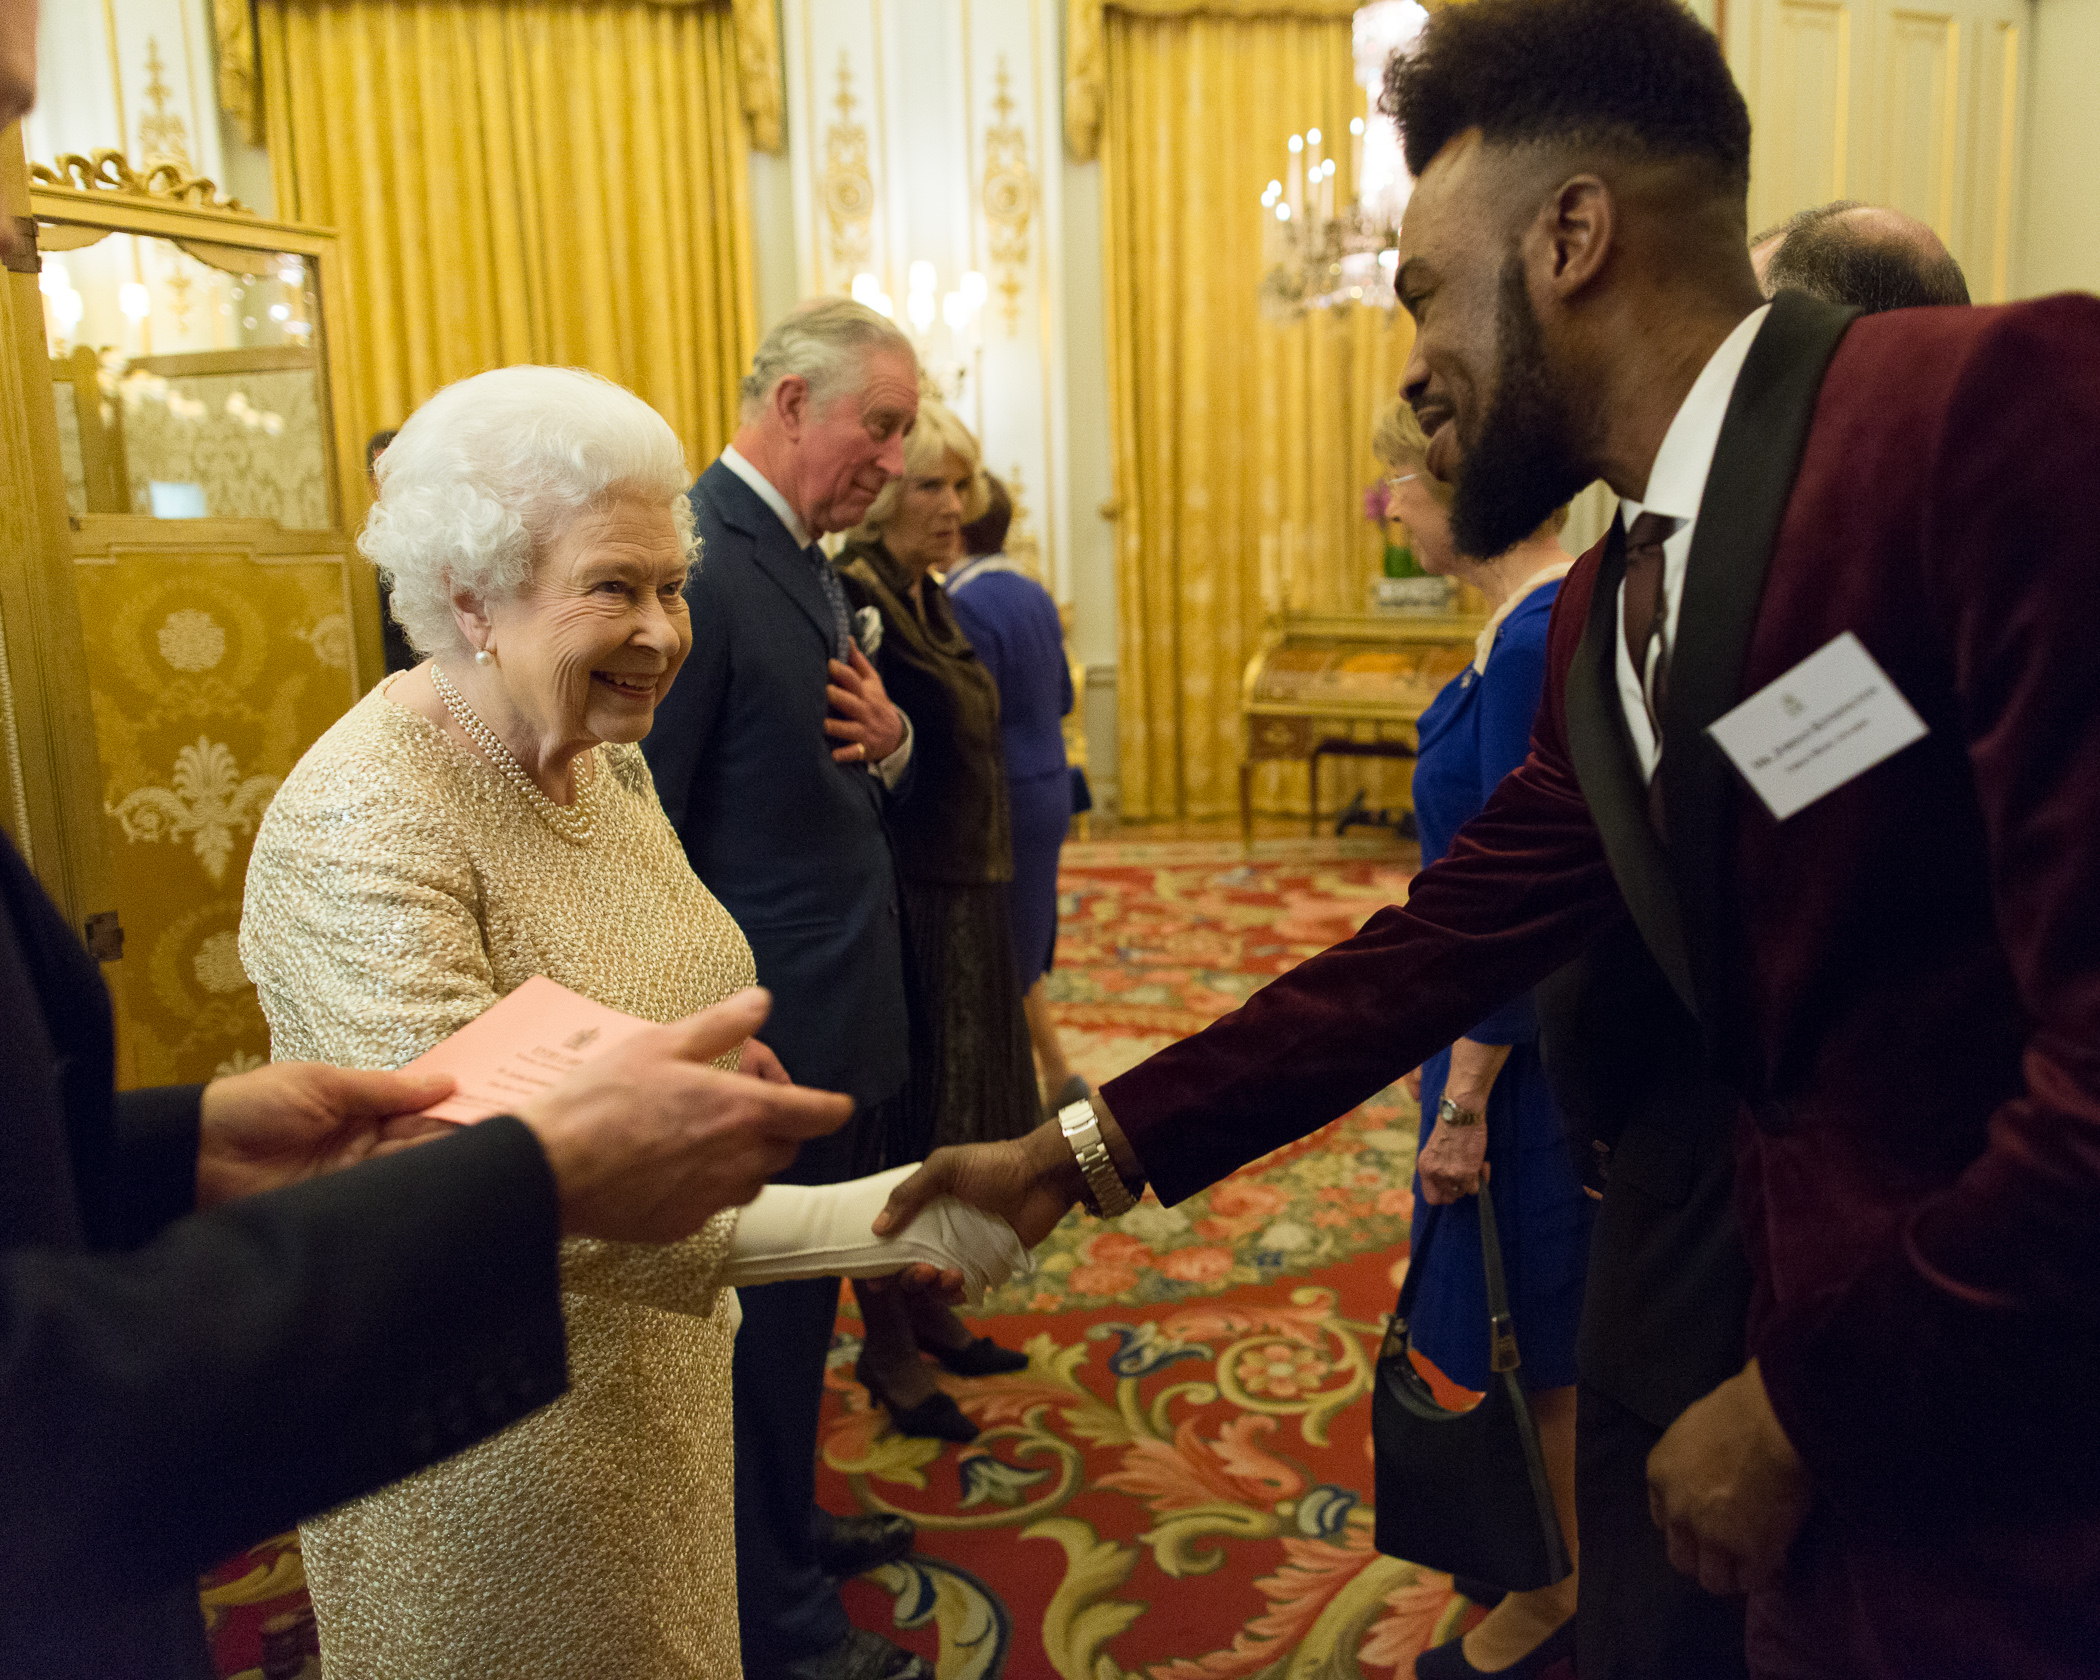 Our CEO of Invincible Group, Jordan Kensington honoured by Queen